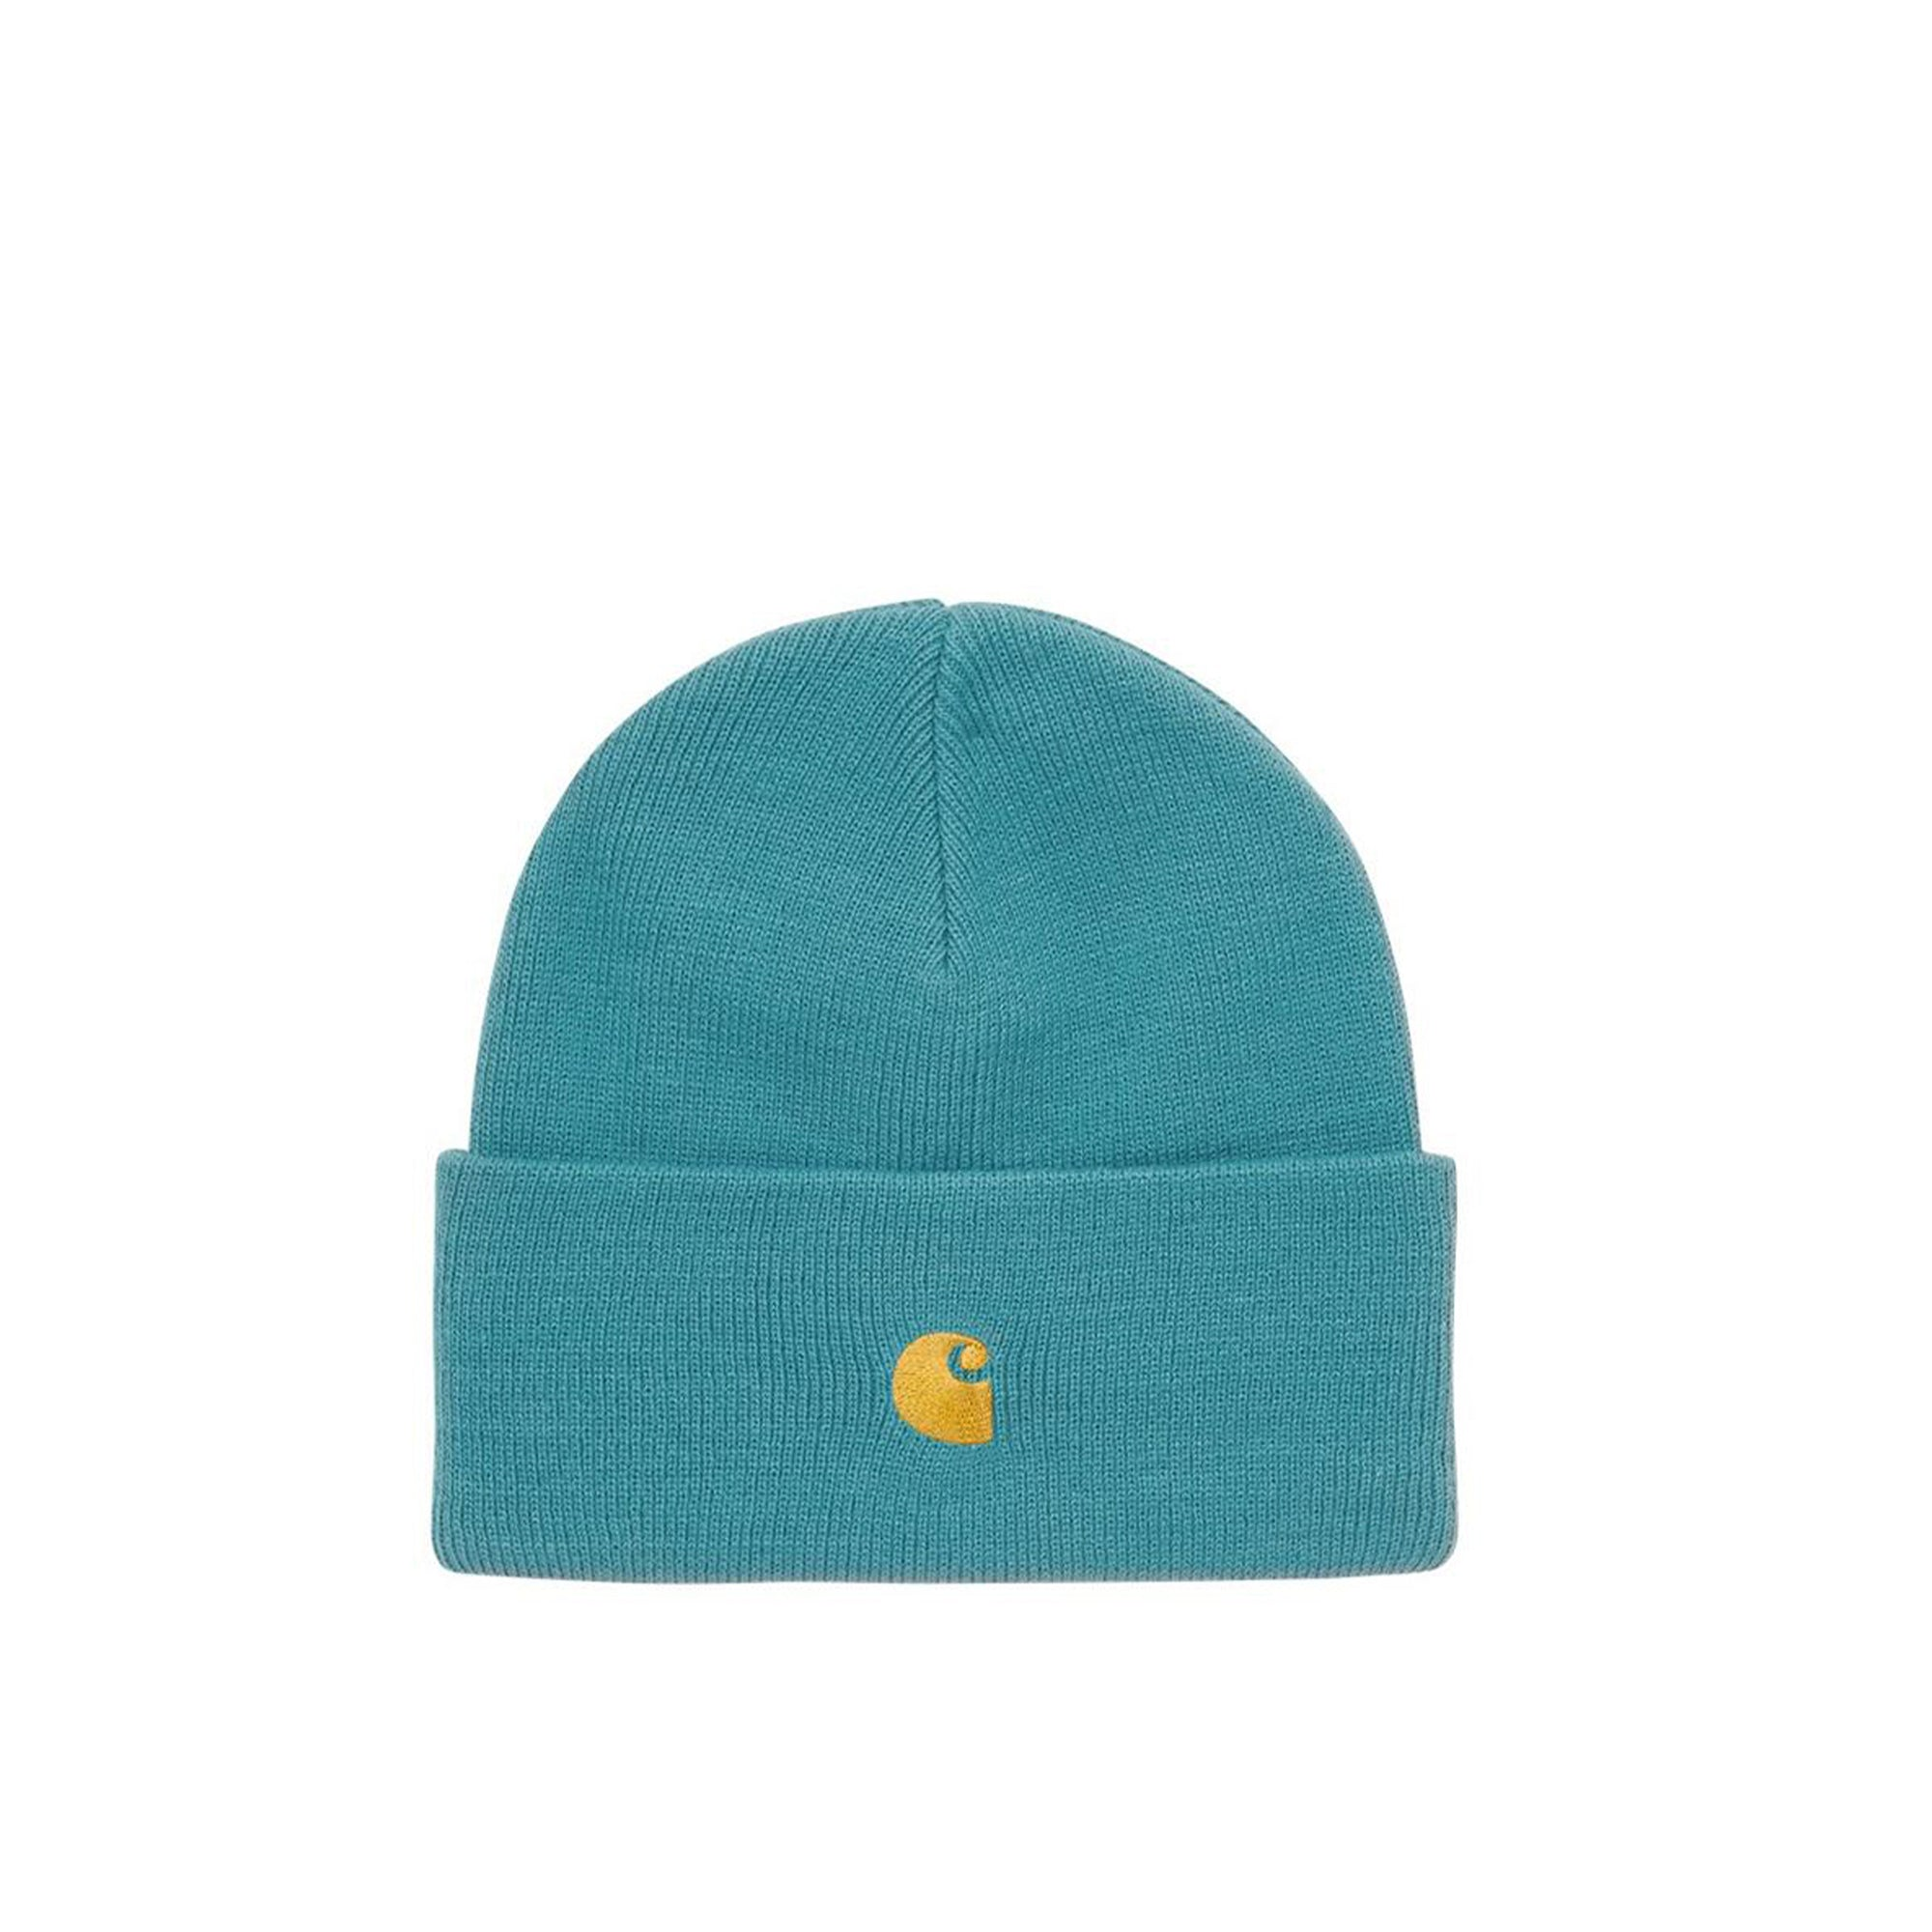 Carhartt WIP Chase Beanie: Hydro / Gold - The Union Project